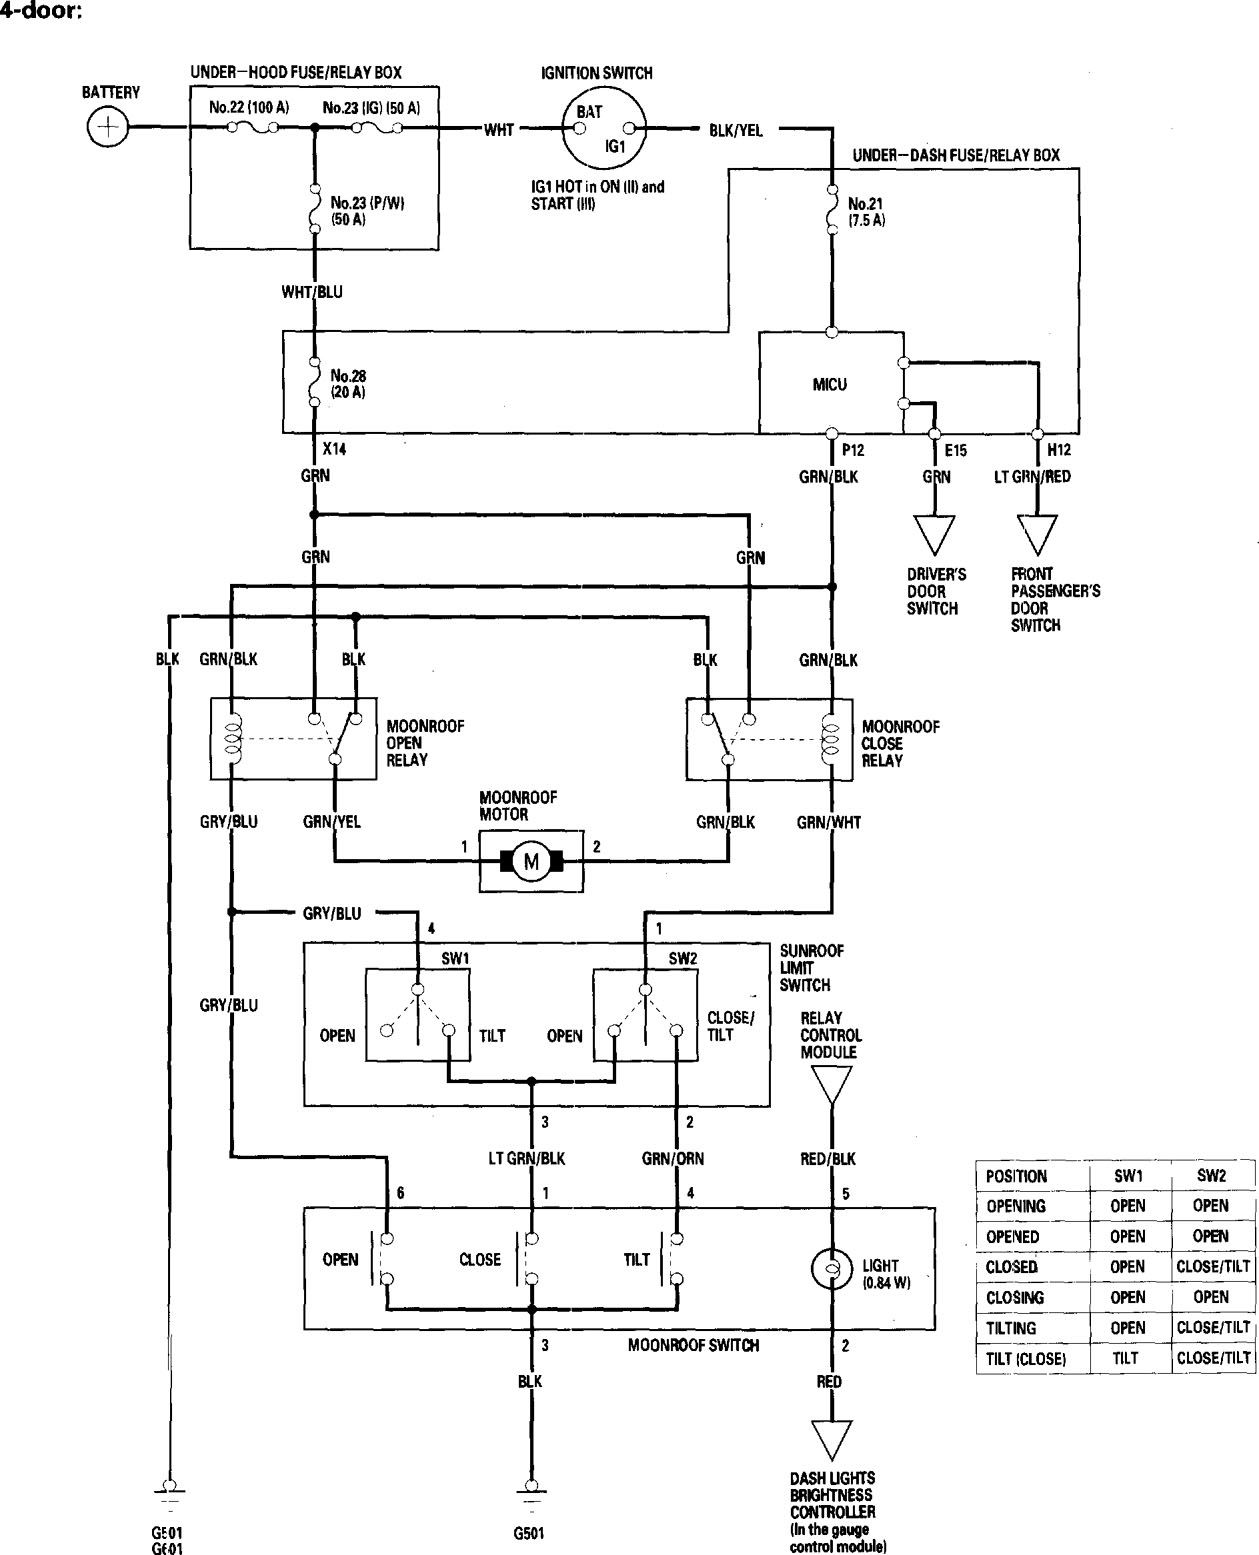 DIAGRAM Wiring Diagram Honda Accord 2006 FULL Version HD Quality Accord  2006 - PALMBEACHBUDS.KINGGO.FRpalmbeachbuds kinggo fr